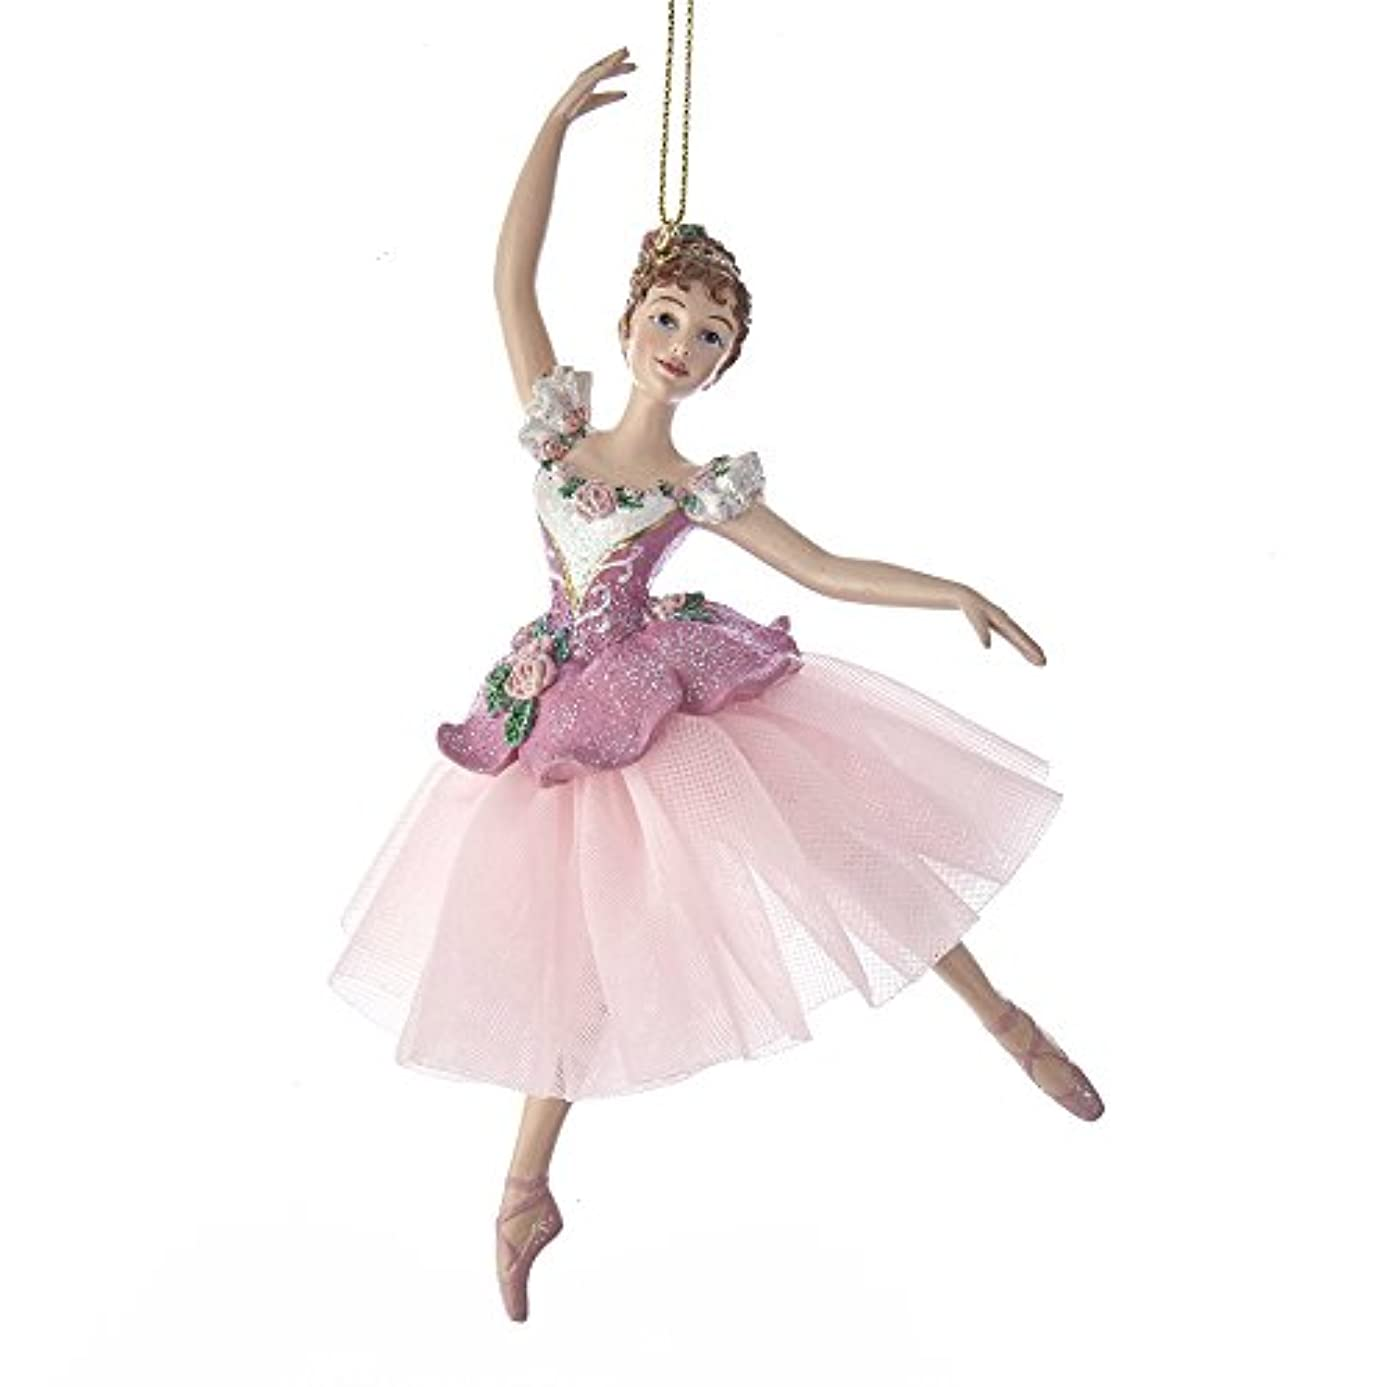 Kurt Adler Waltz Of Flowers Ballerina Ornament